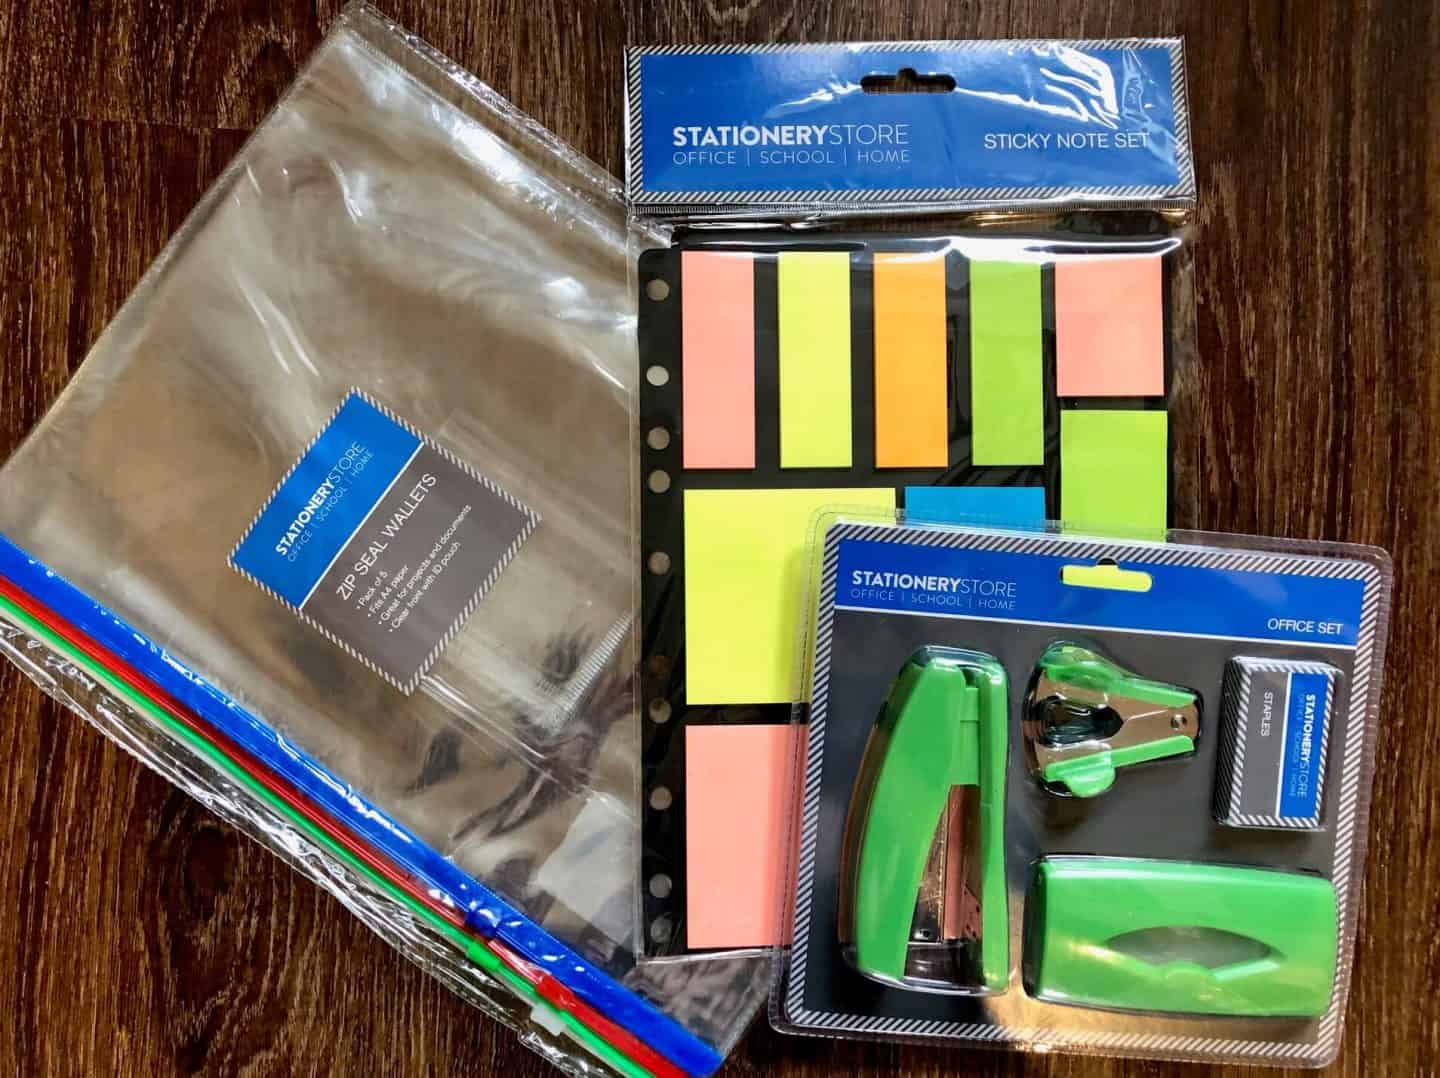 home bargains stationery store